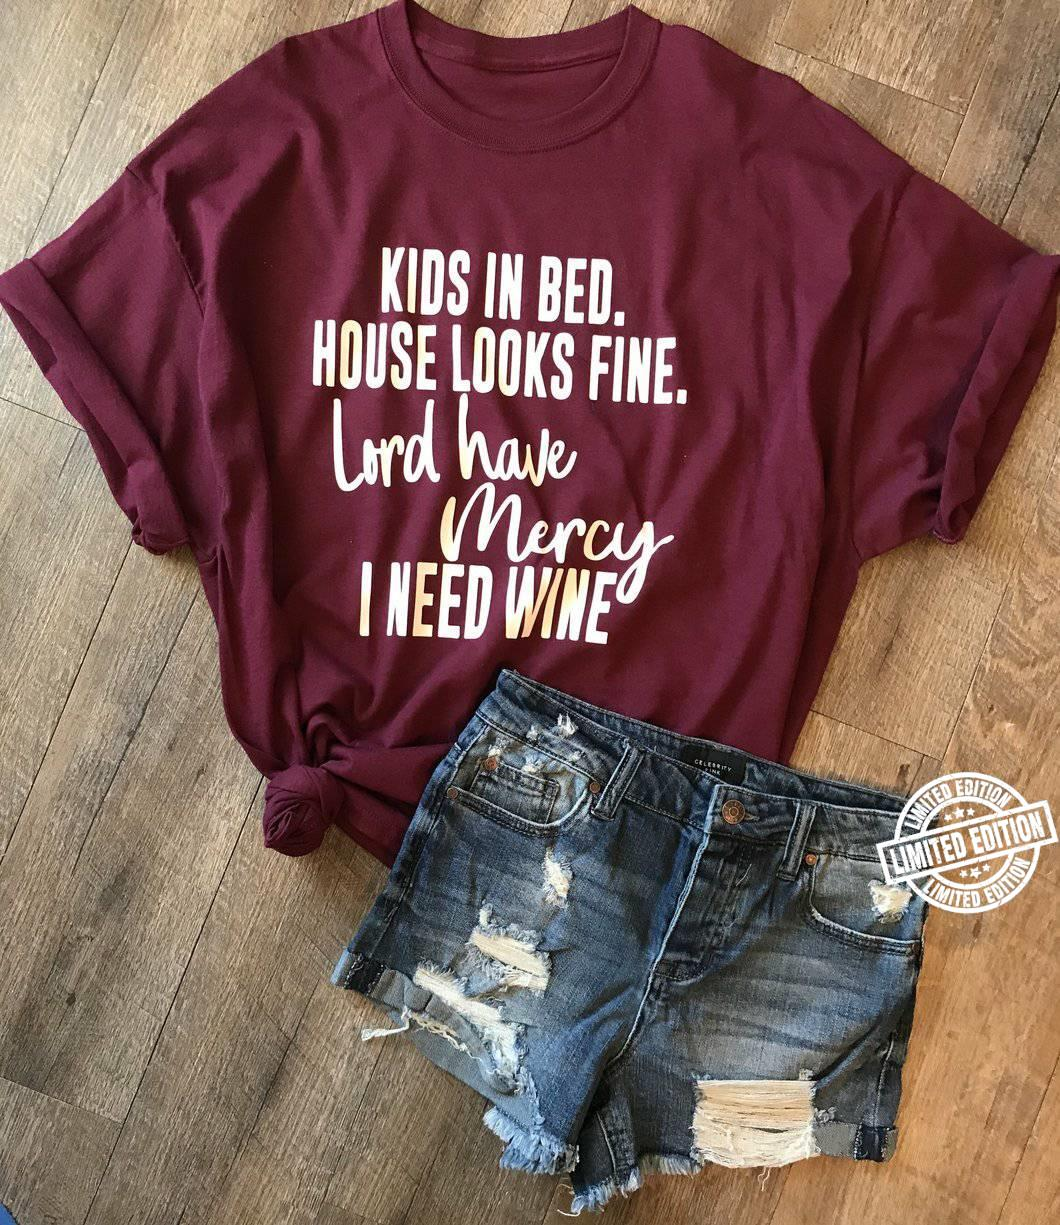 Kids in bed house looks fine lord have mercy i need wine shirt